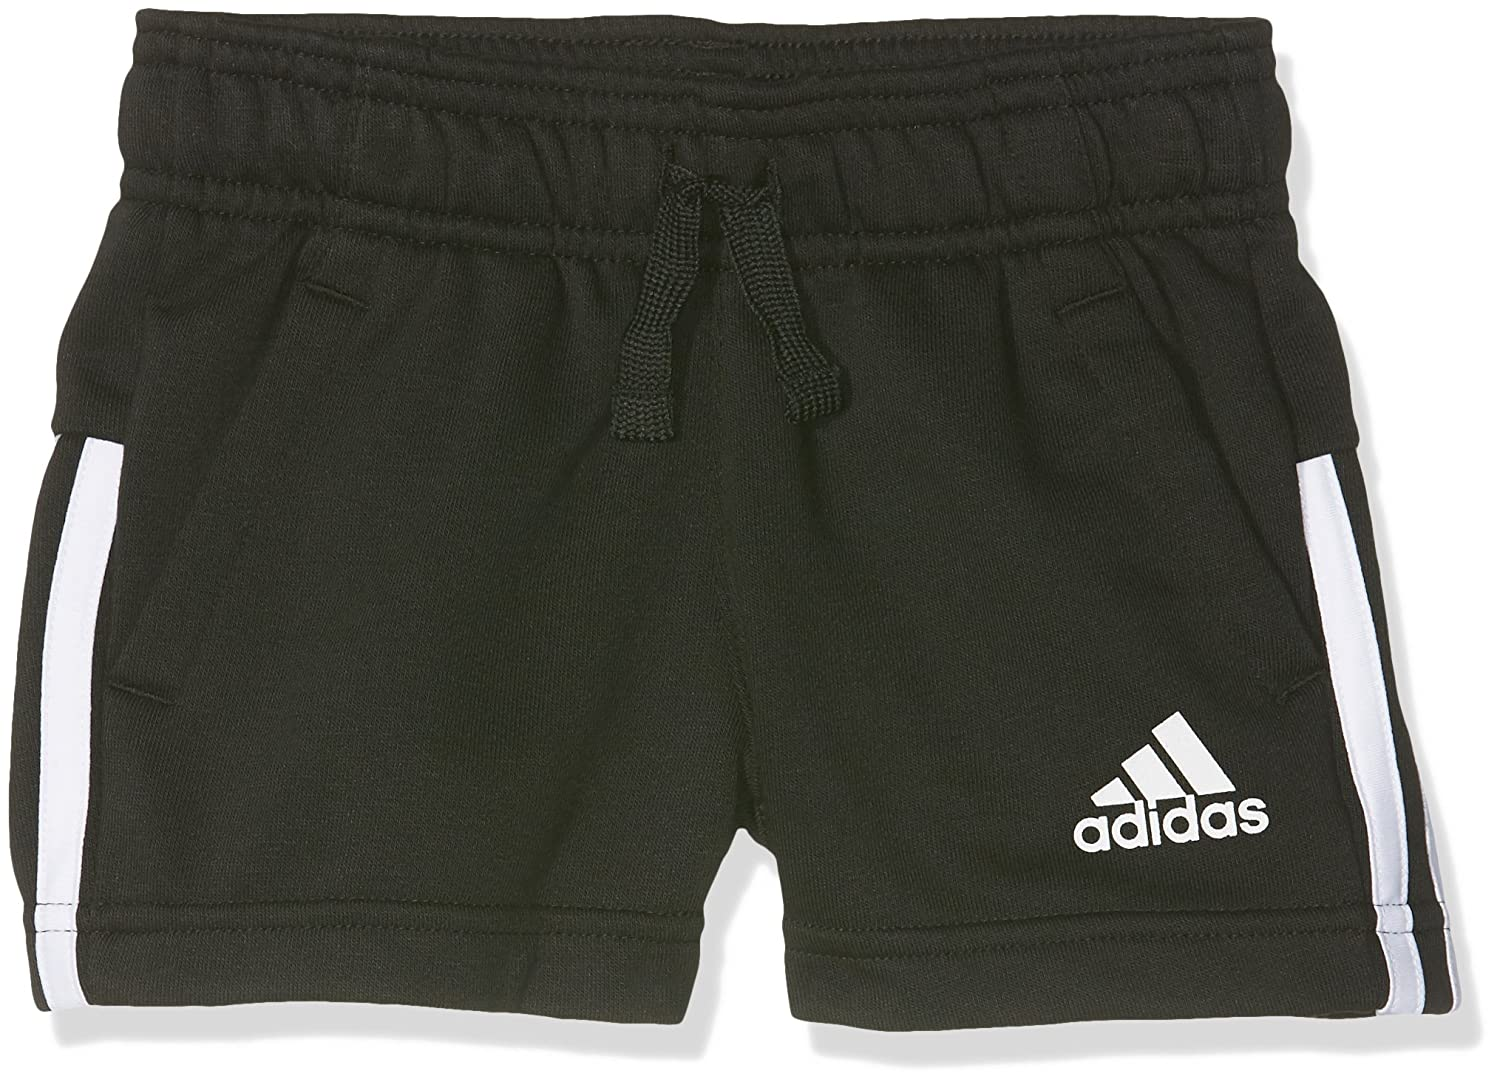 adidas Girls' 3 Stripes Shorts BP8636